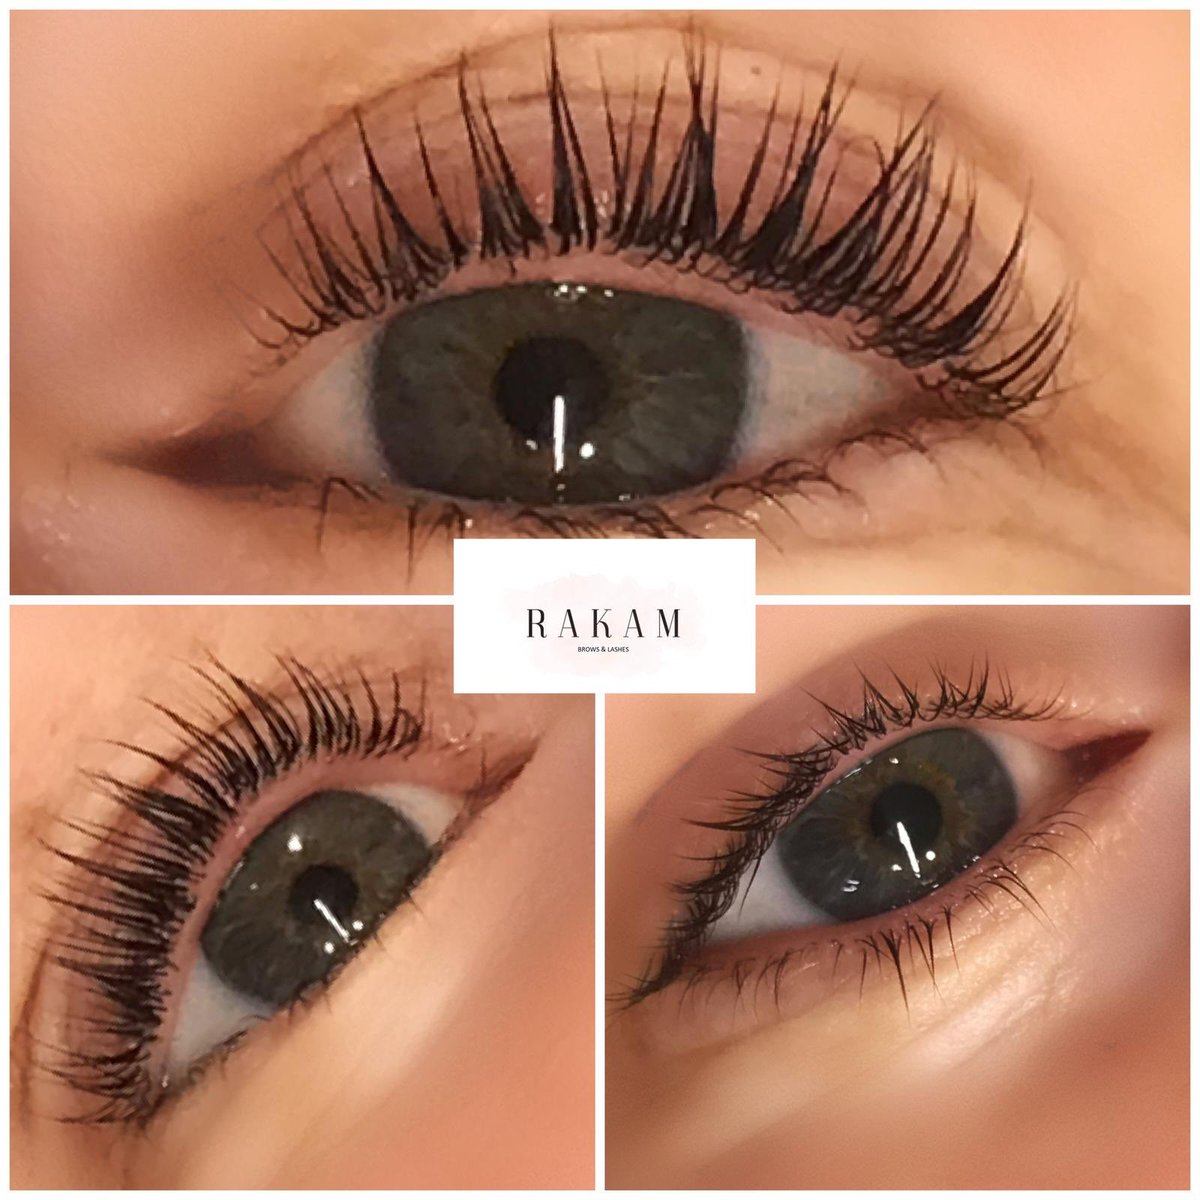 23c1379830e R A K A M Brows & Lashes - London · @RakamBrows. 18 days ago. Check out the  amazing before and after photos of #lashlift Only at @RakamBrows #